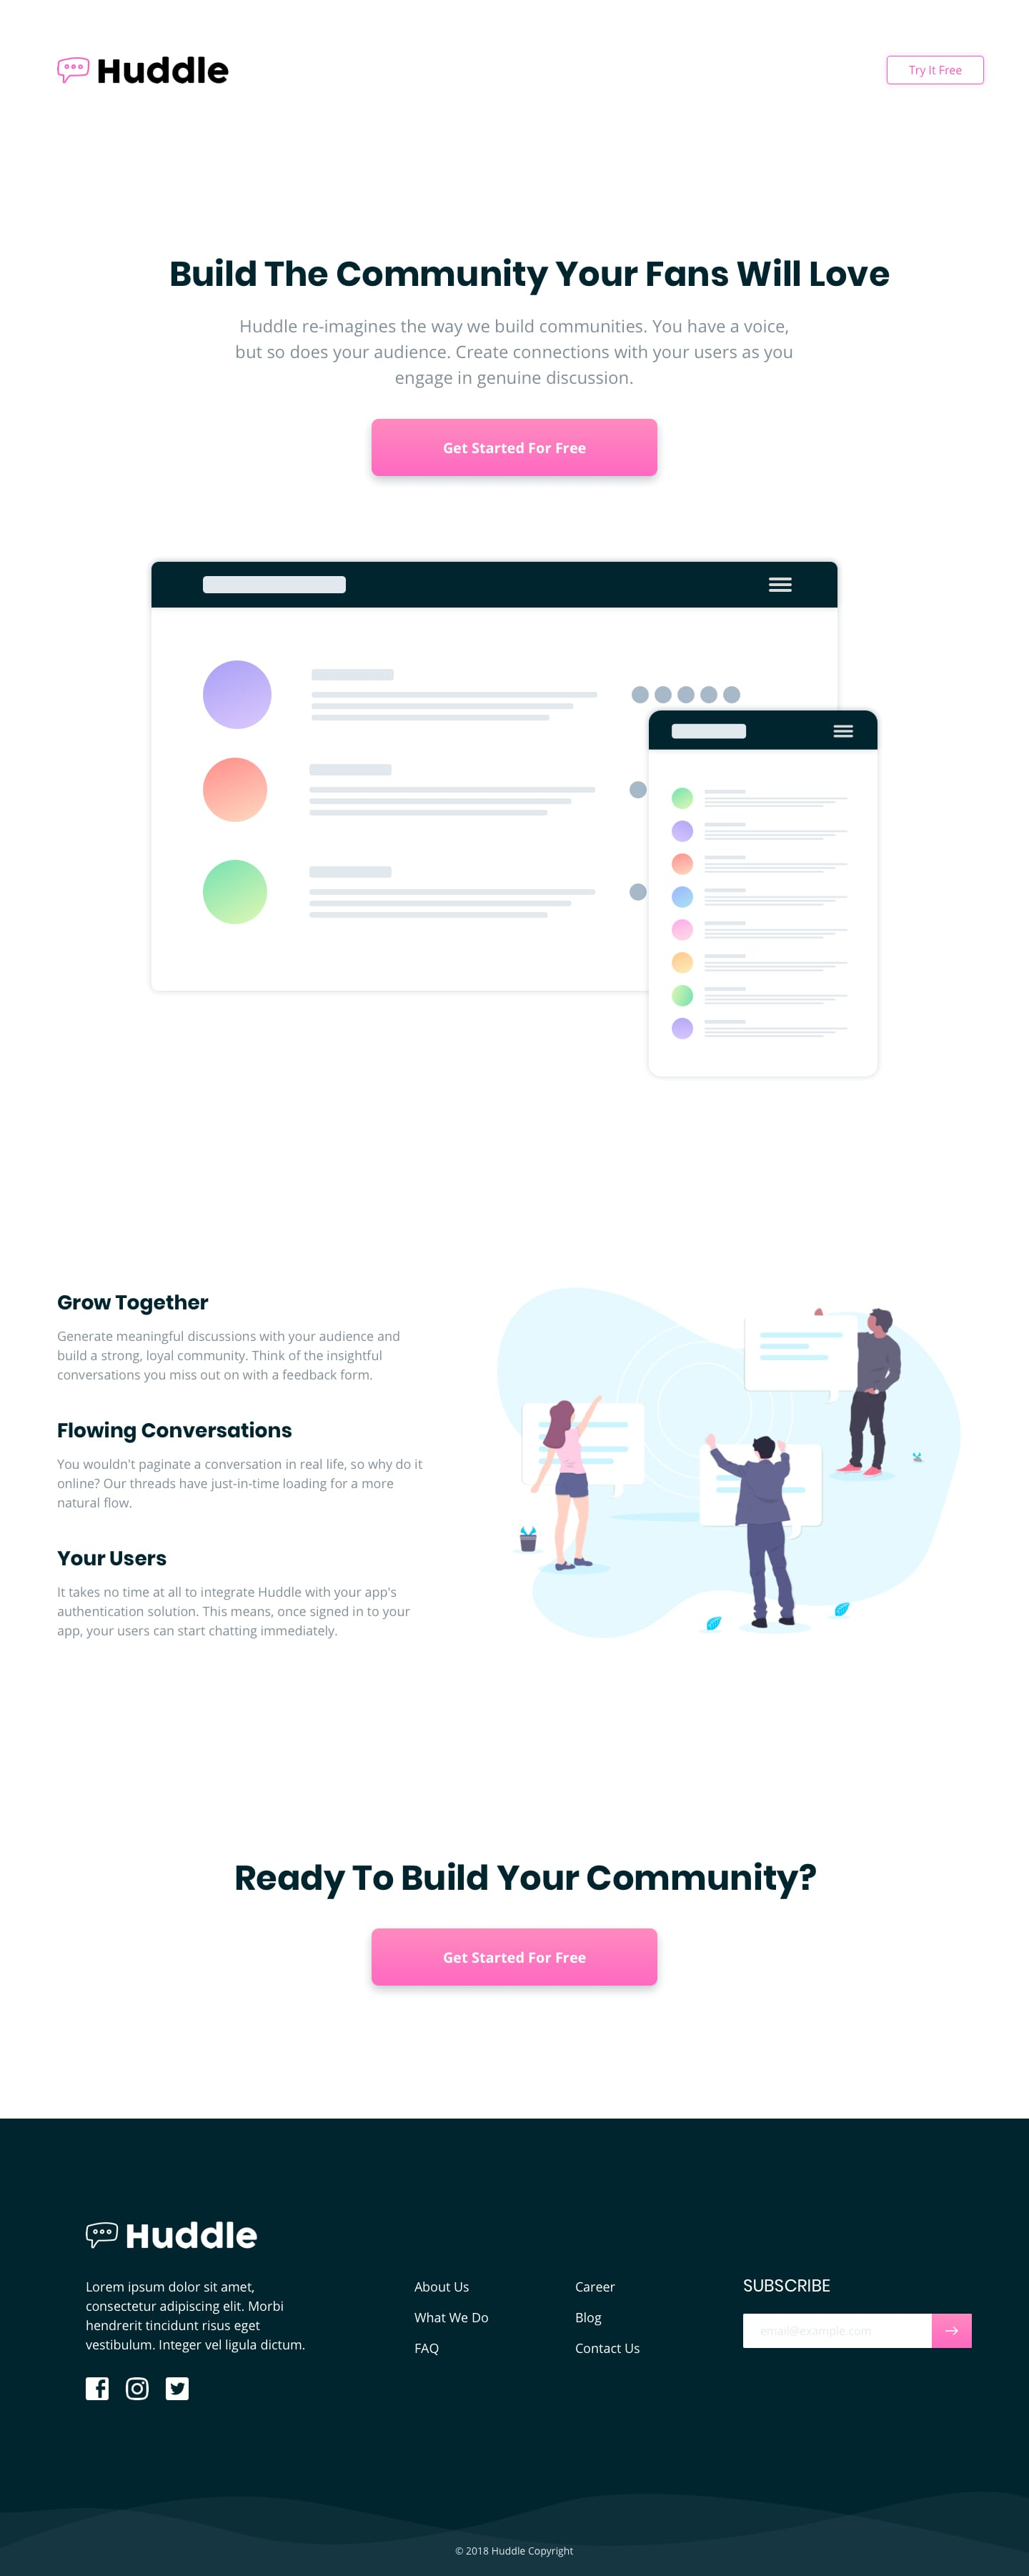 Design preview for Huddle landing page with split benefits section coding challenge